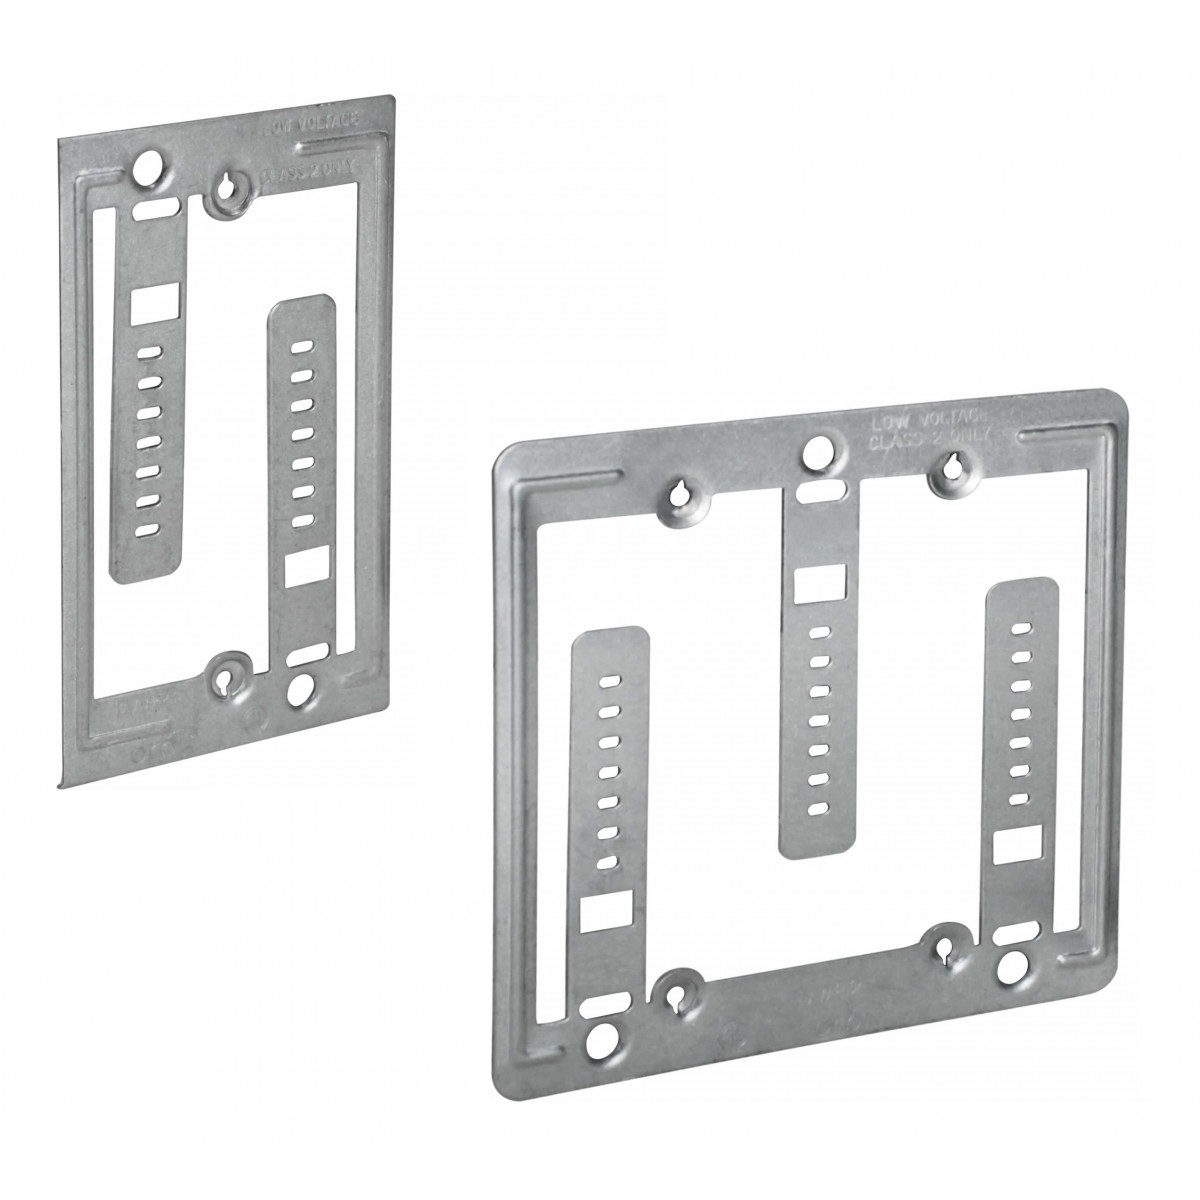 Electrical Conduit Mounting Plate Wiring Diagram And Ebooks Fuse Box Clamps Low Voltage Wall Plates Supports Straps Rh Orbitelectric Com Frame